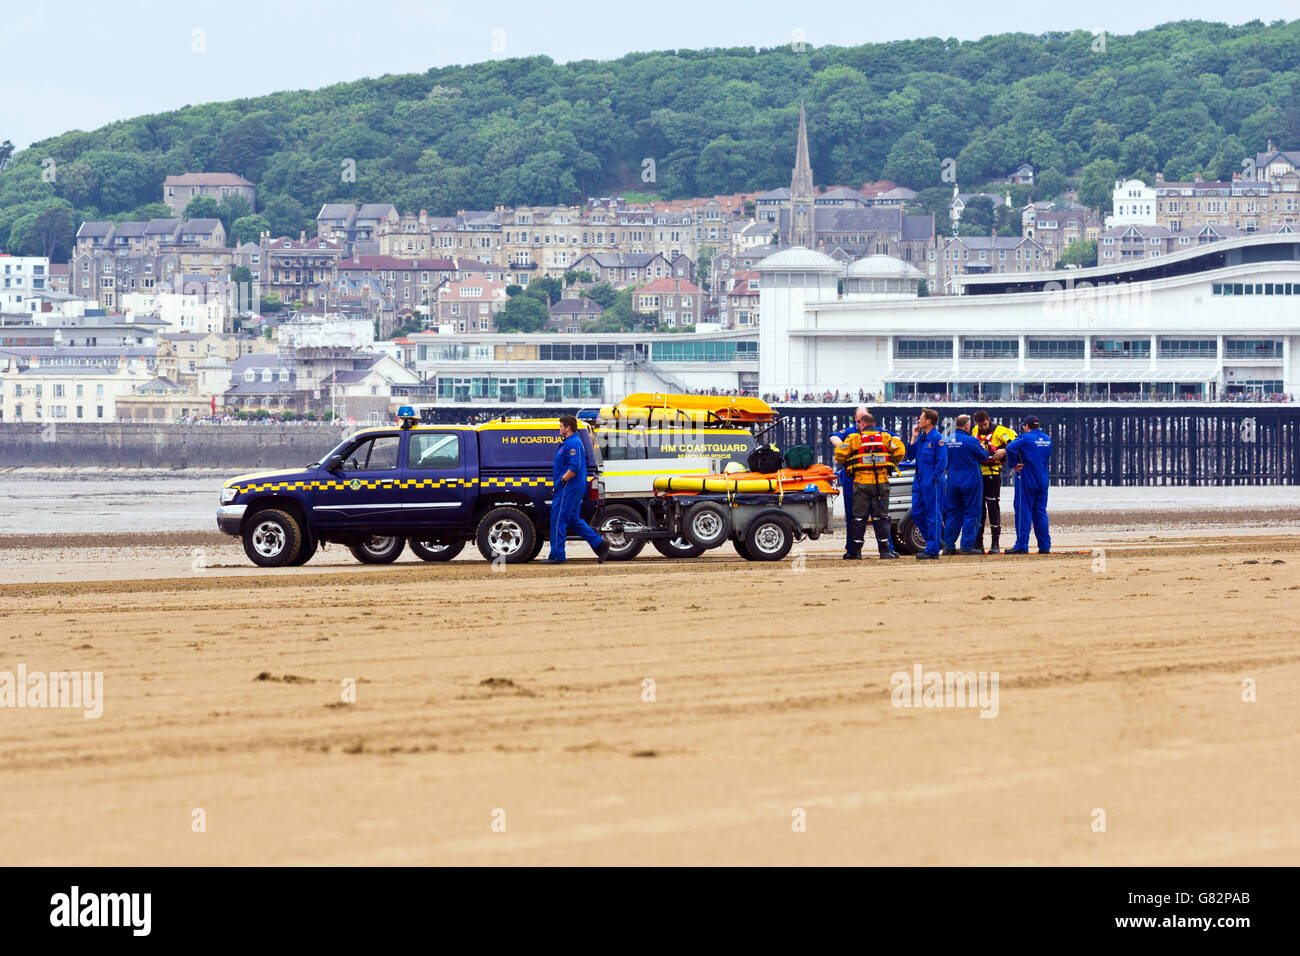 Coastguard vehicle and crew on the beach at Weston-Super-Mare, North Somerset, UK - Stock Image